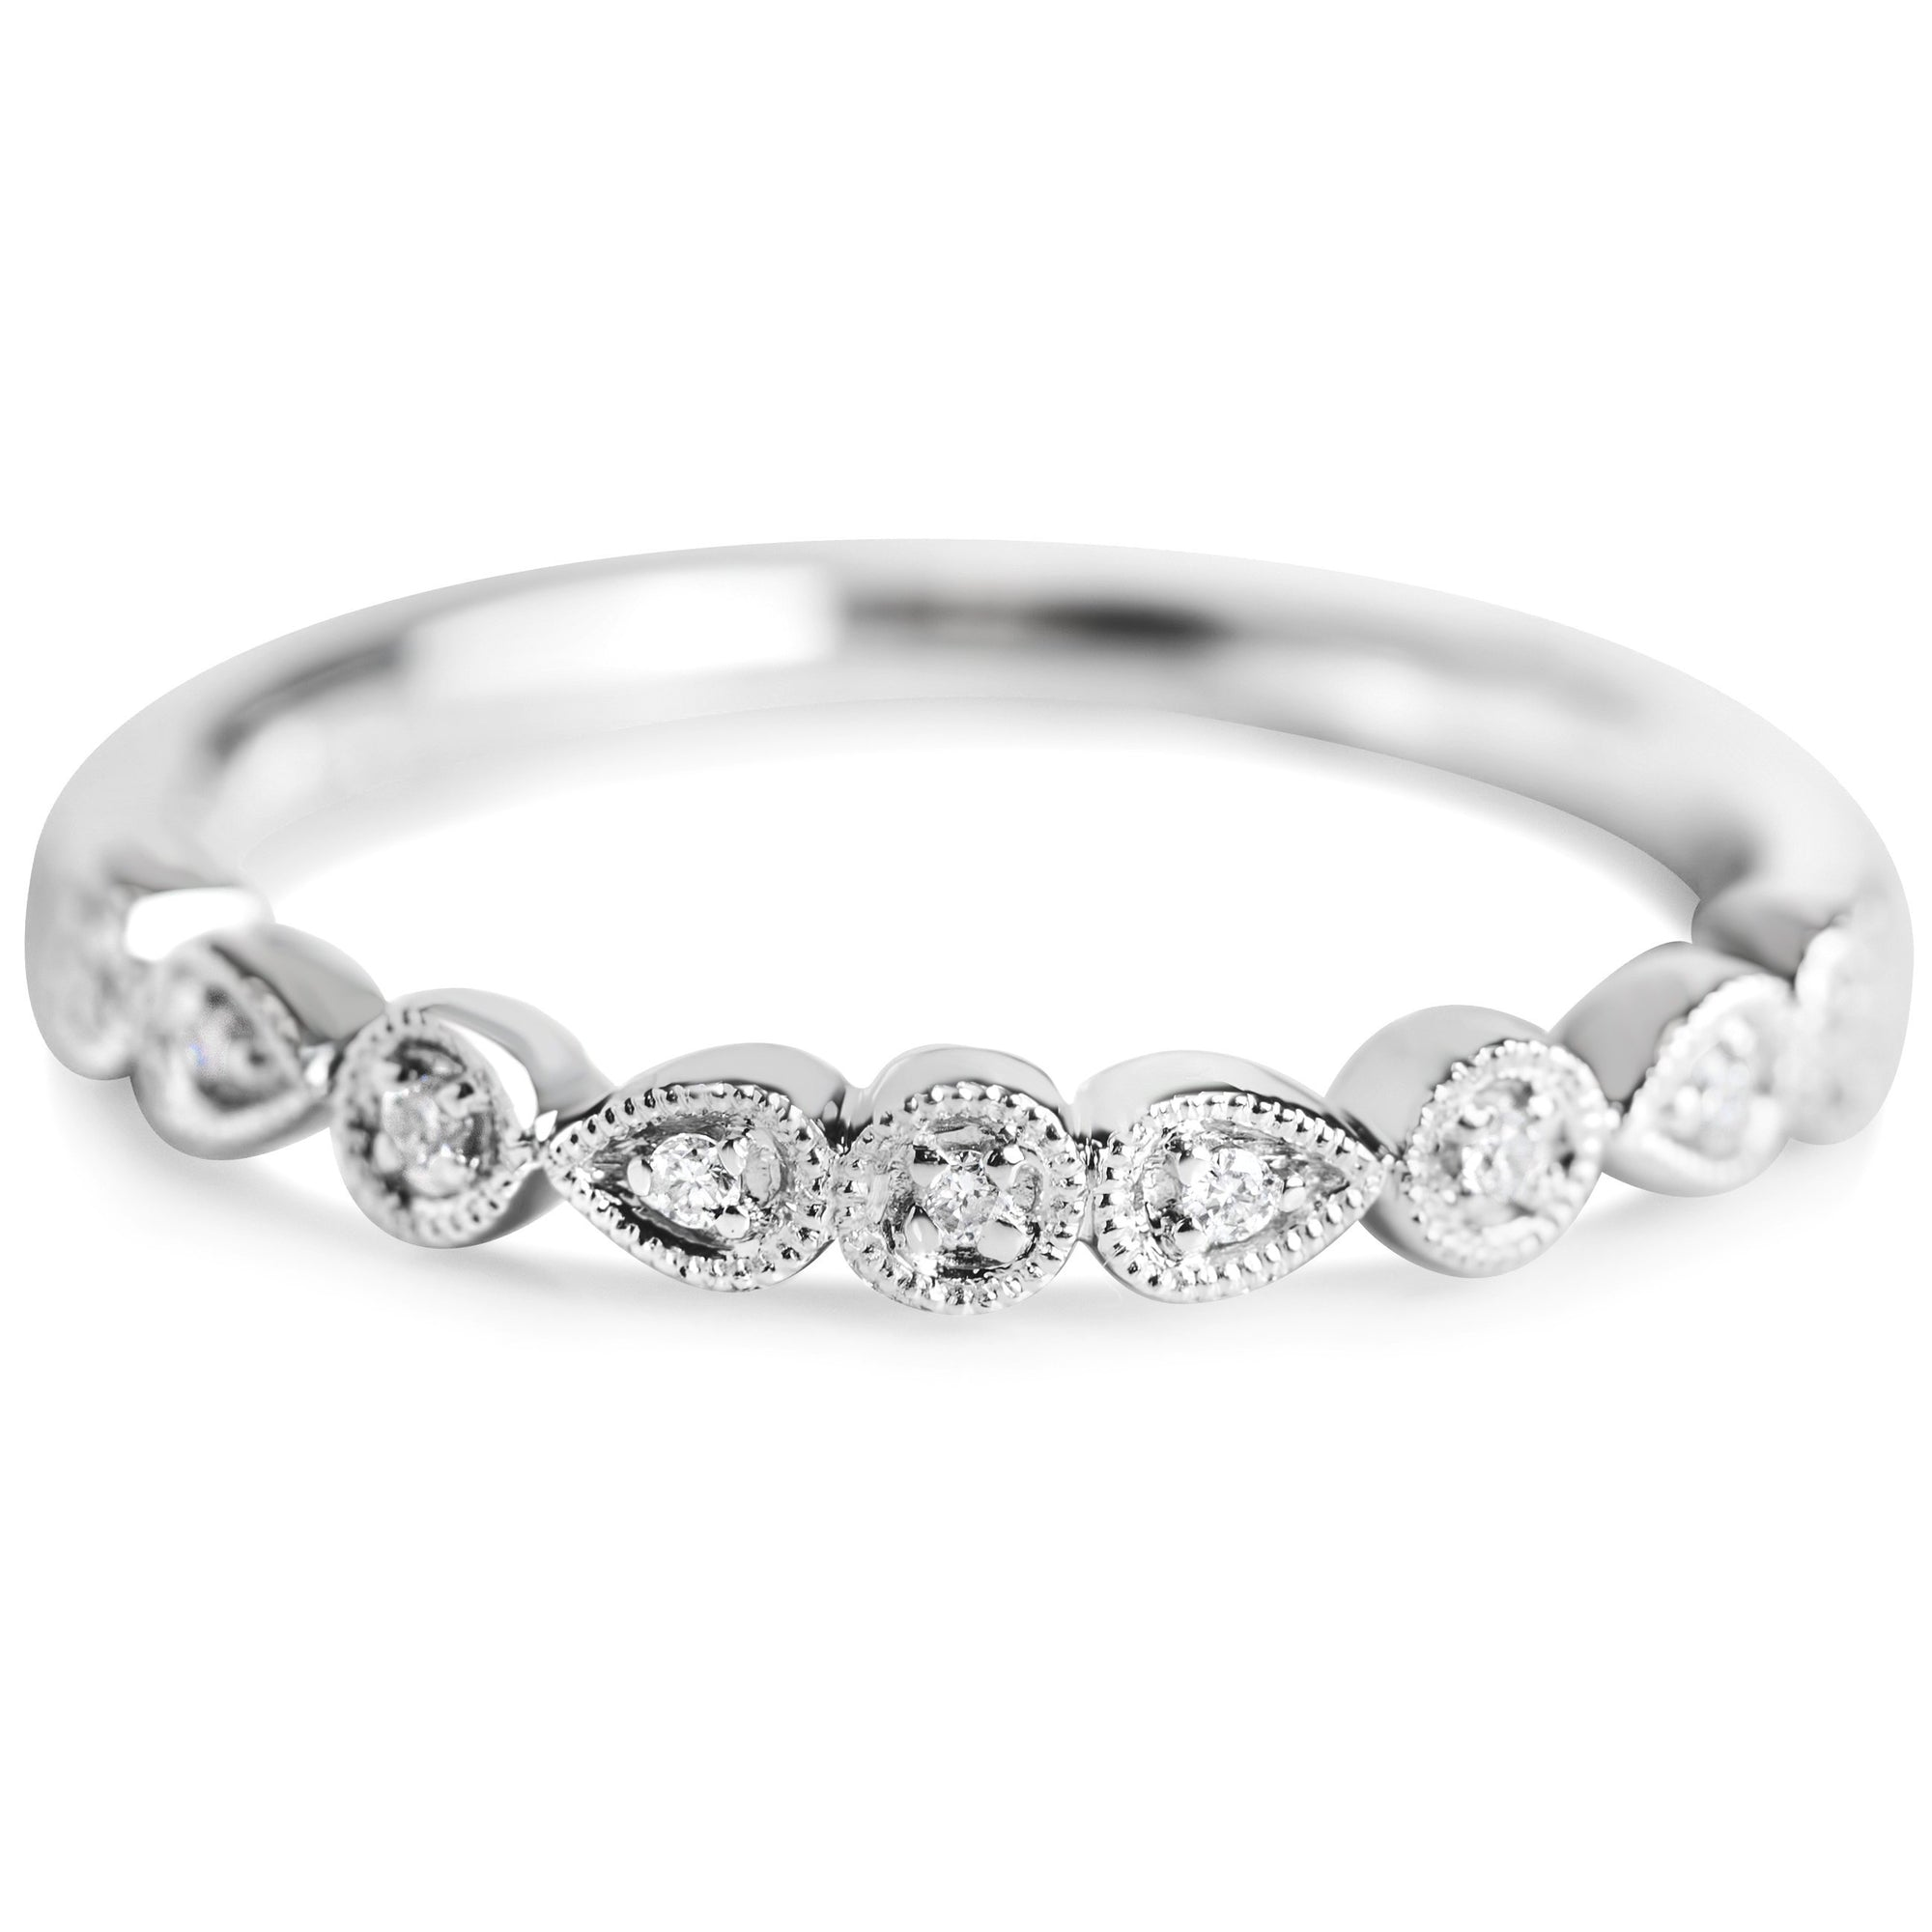 white gold diamond wedding band or stack ring with milgrain details